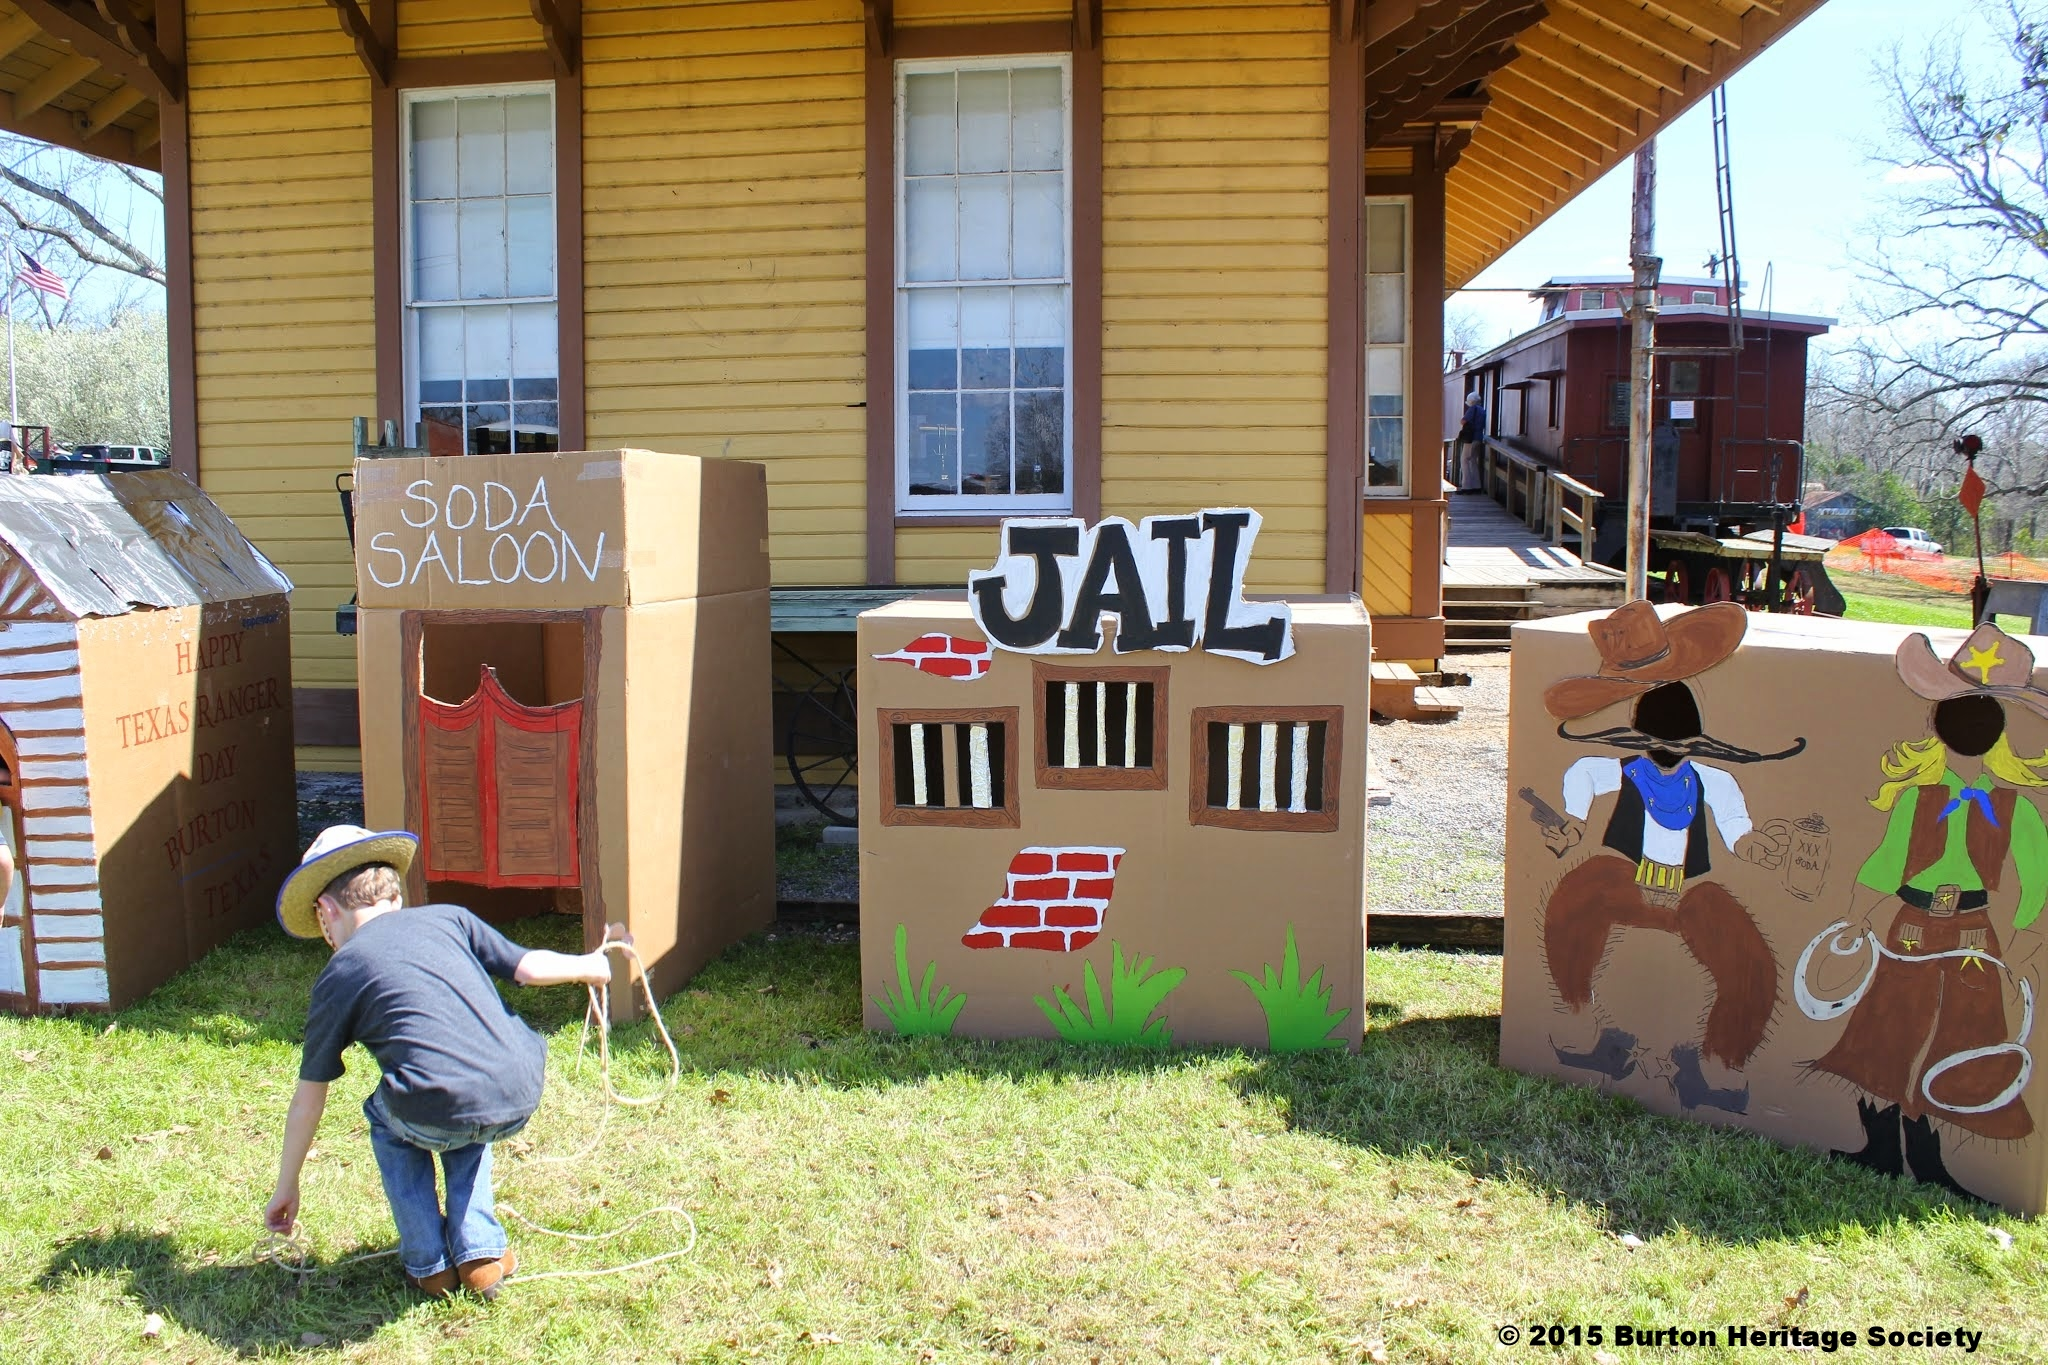 Come check out the jail in Lil' Rangerville or pose as a cowboy or cowgirl in our photo prop area!